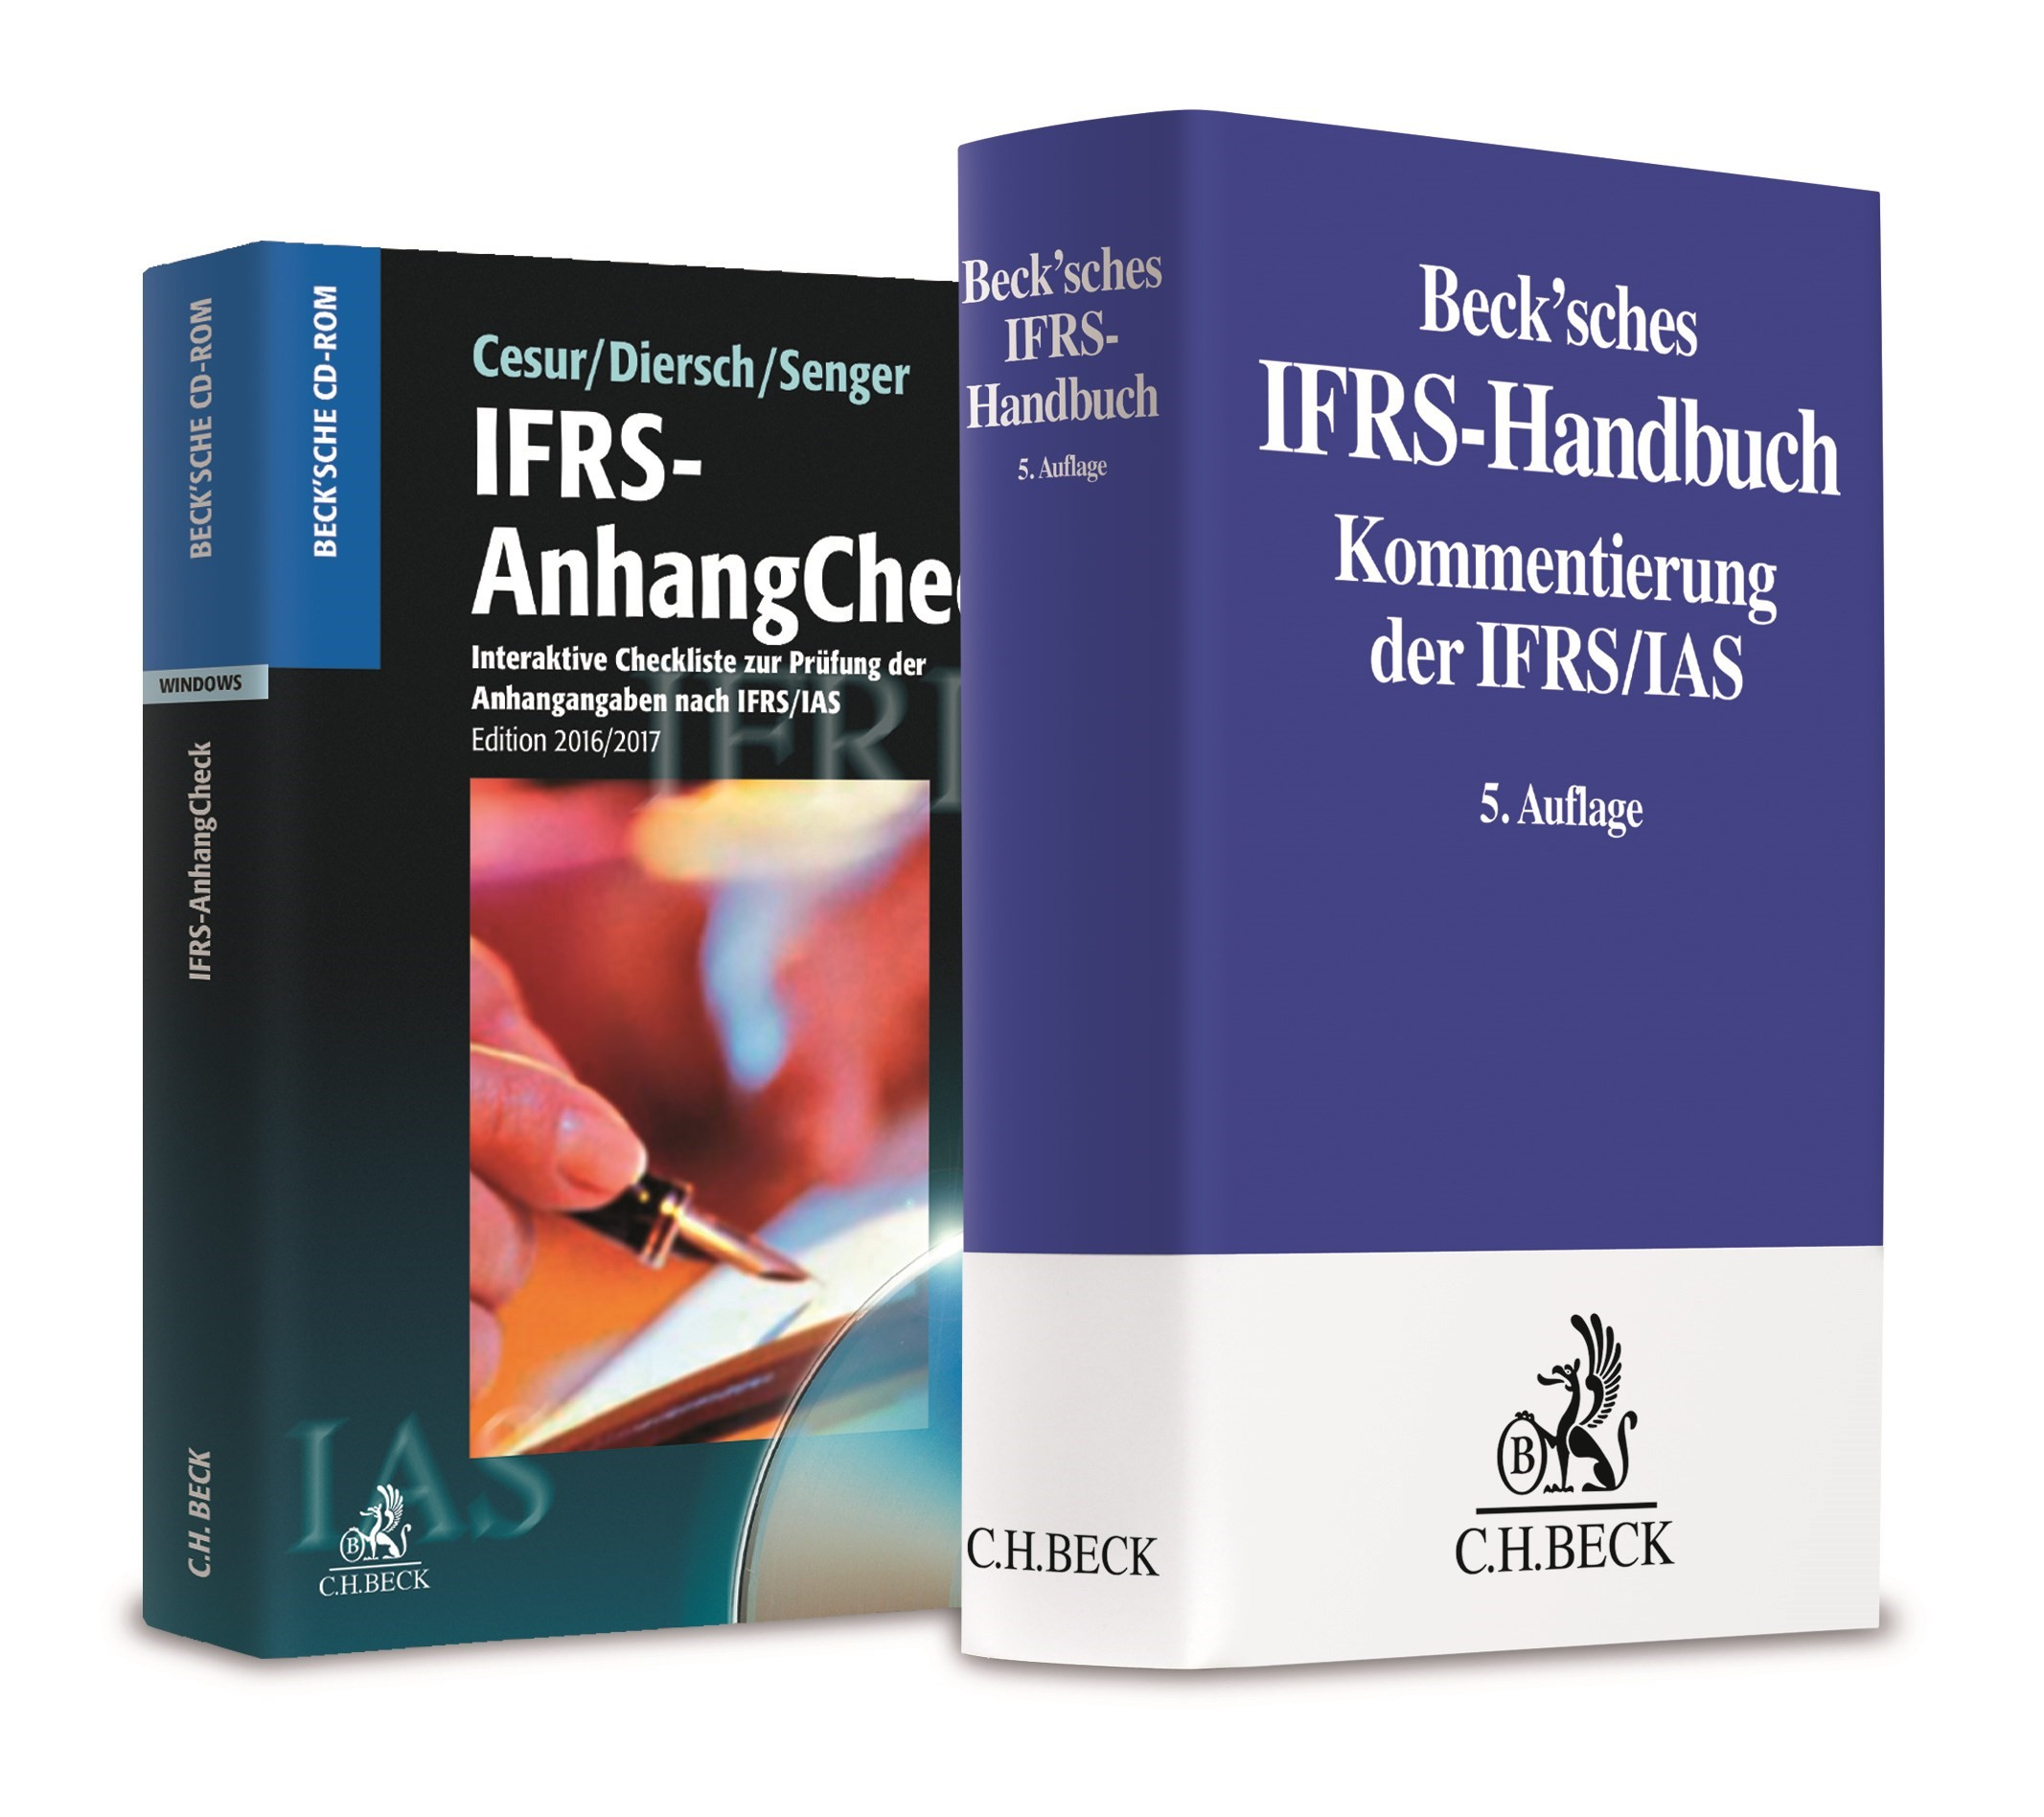 Beck'sches IFRS-Handbuch 5. Auflage 2016 + IFRS-AnhangCheck 2016/2017 • Set, 2017 (Cover)